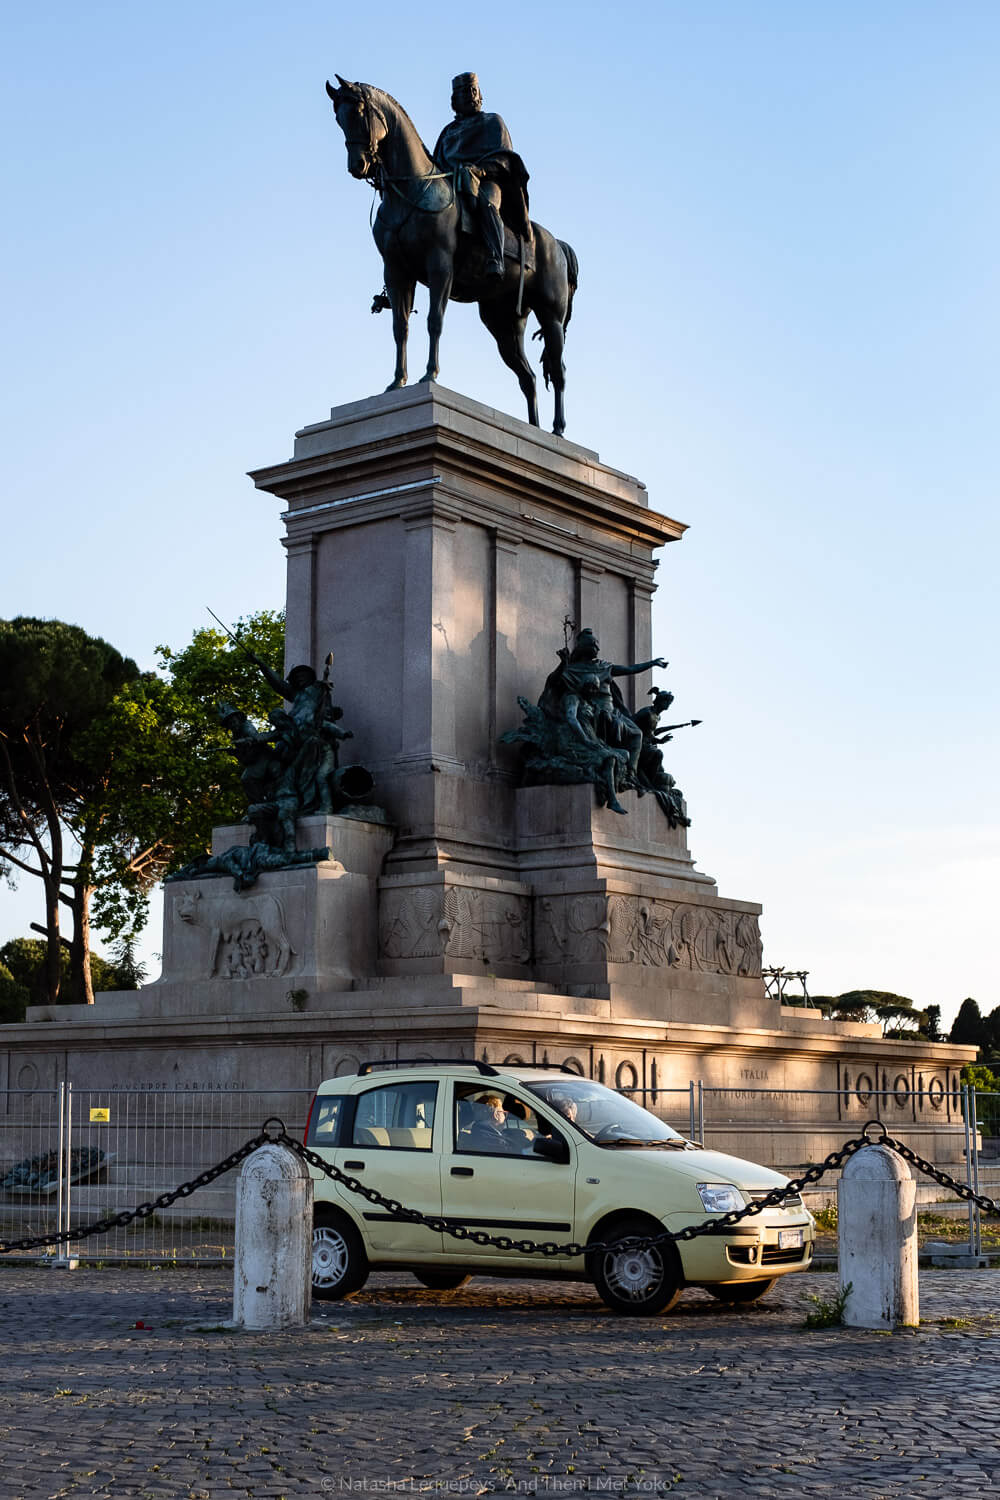 """Monument to Garibaldi on Janiculum Hill. Travel photography and guide by © Natasha Lequepeys for """"And Then I Met Yoko"""". #rome #italy #travelblog #travelphotography"""